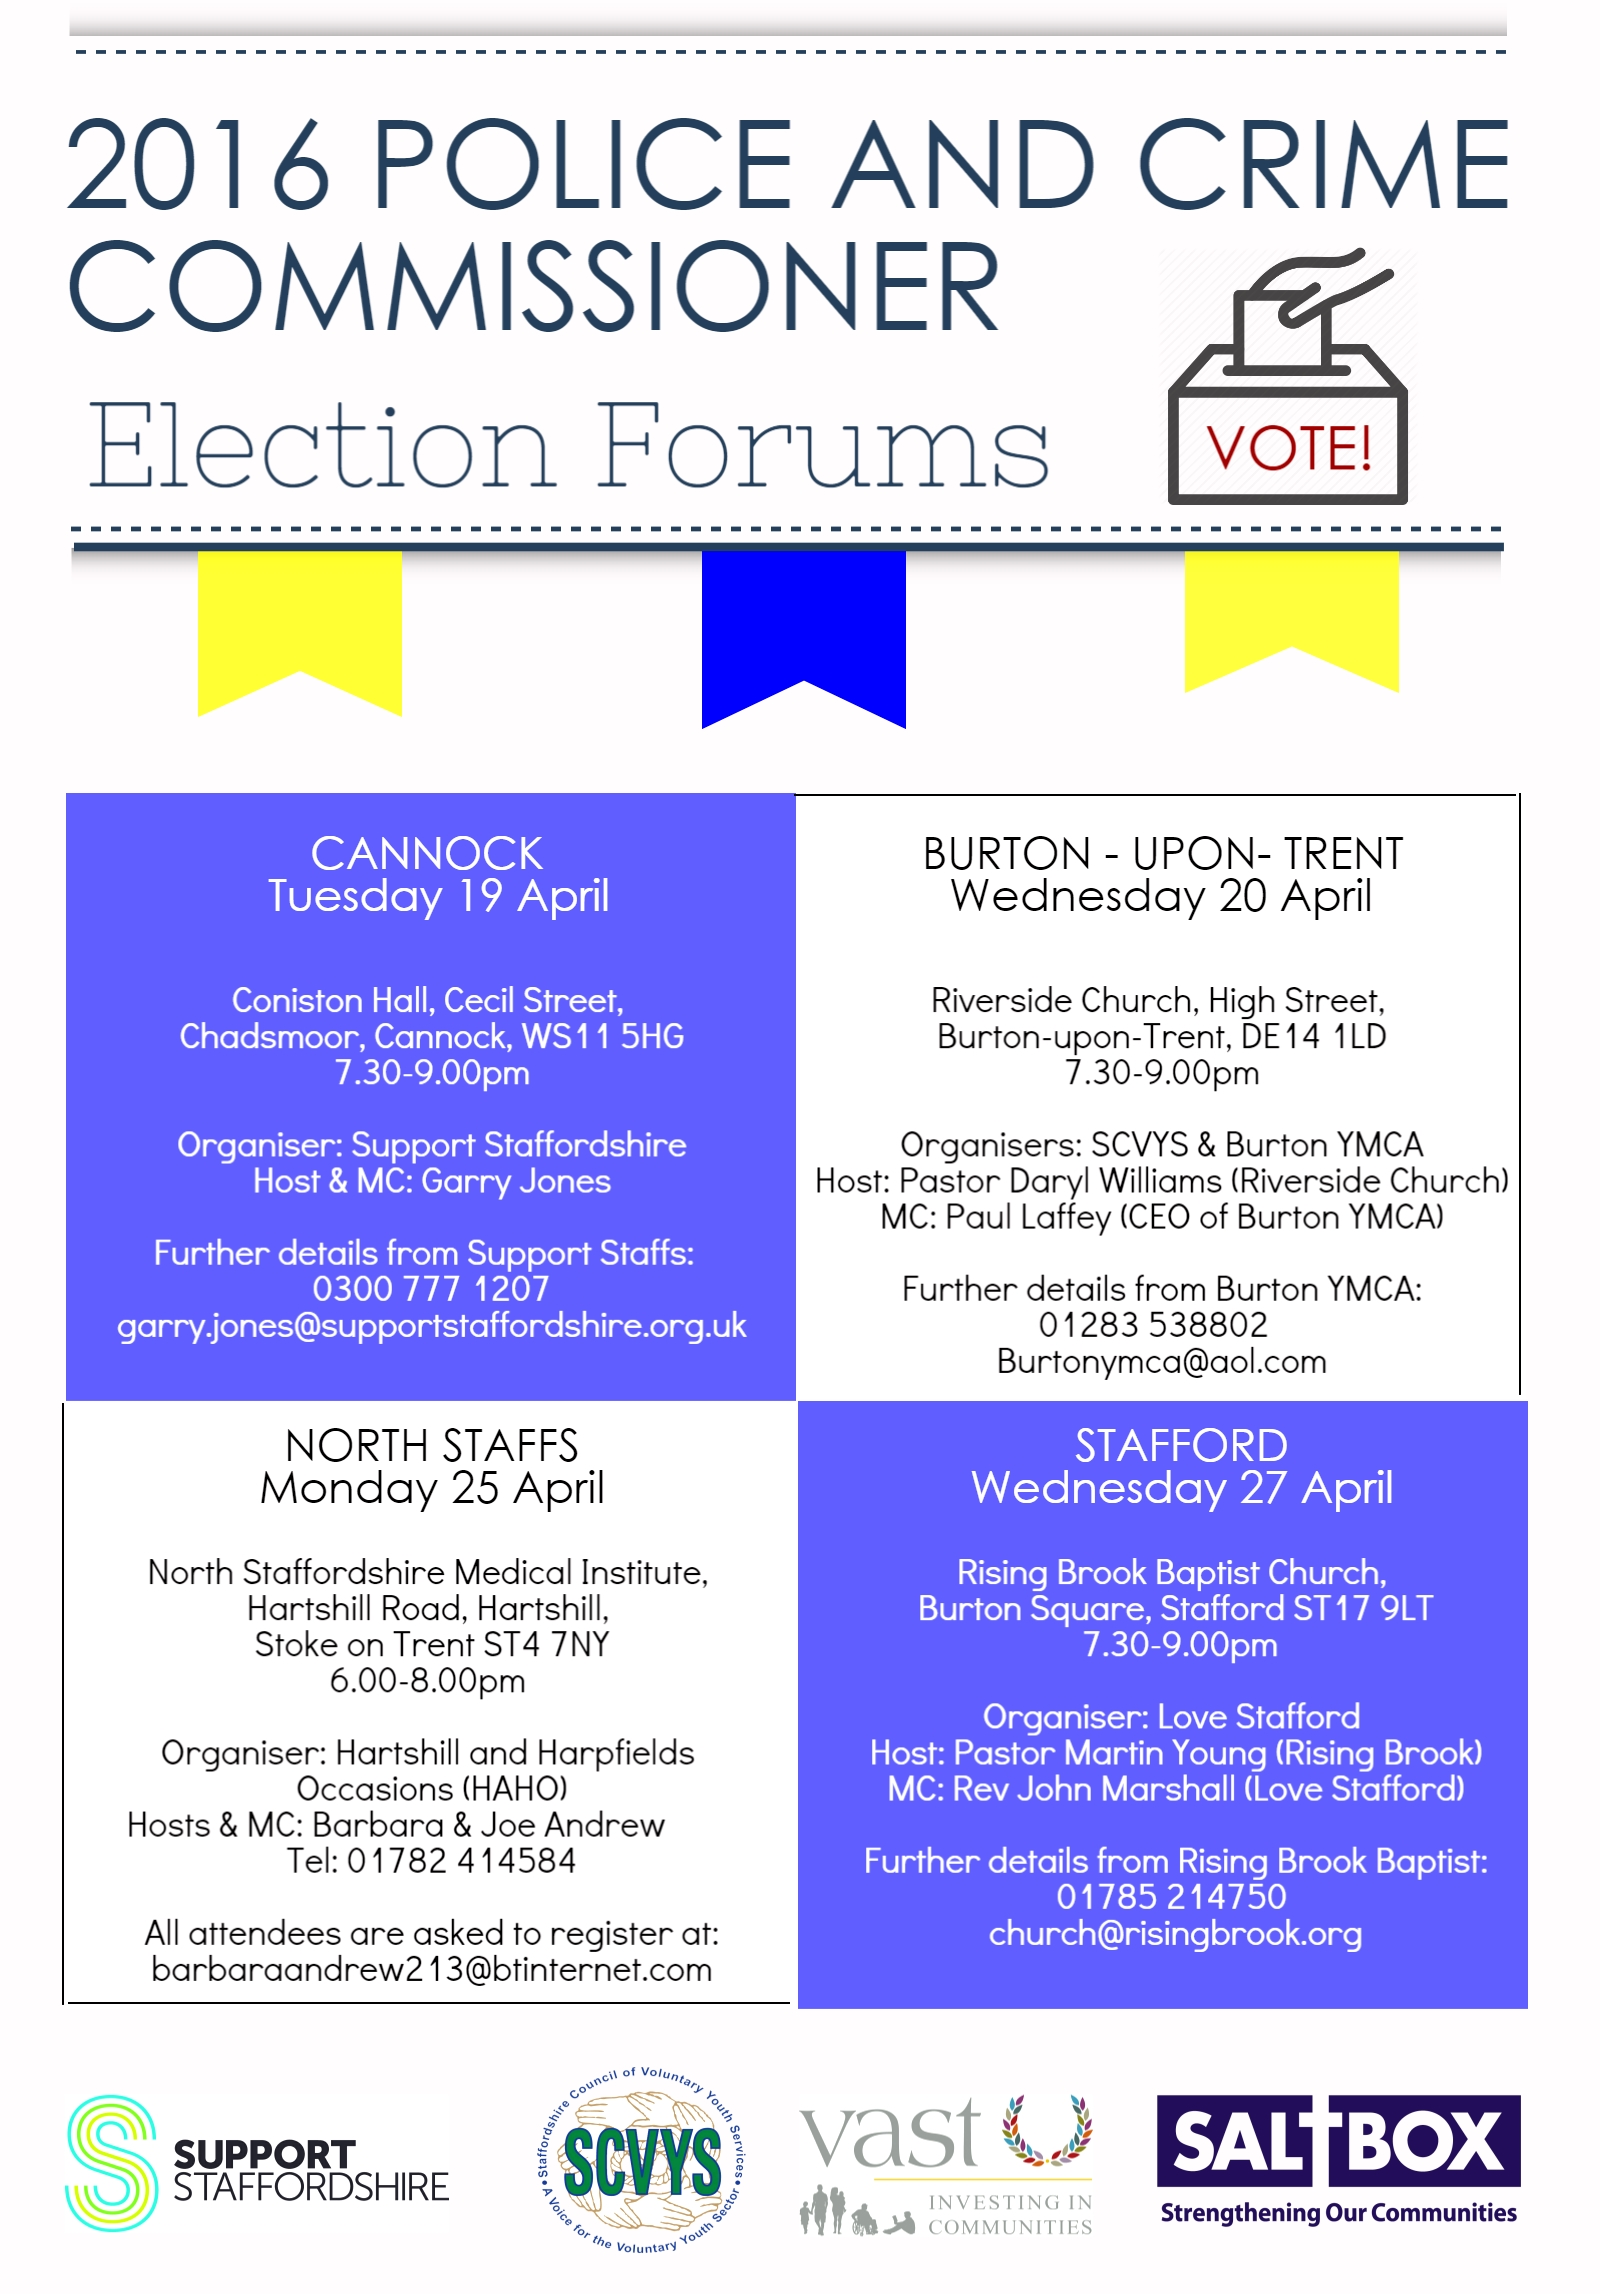 PCC Election Forums 2016 flyer